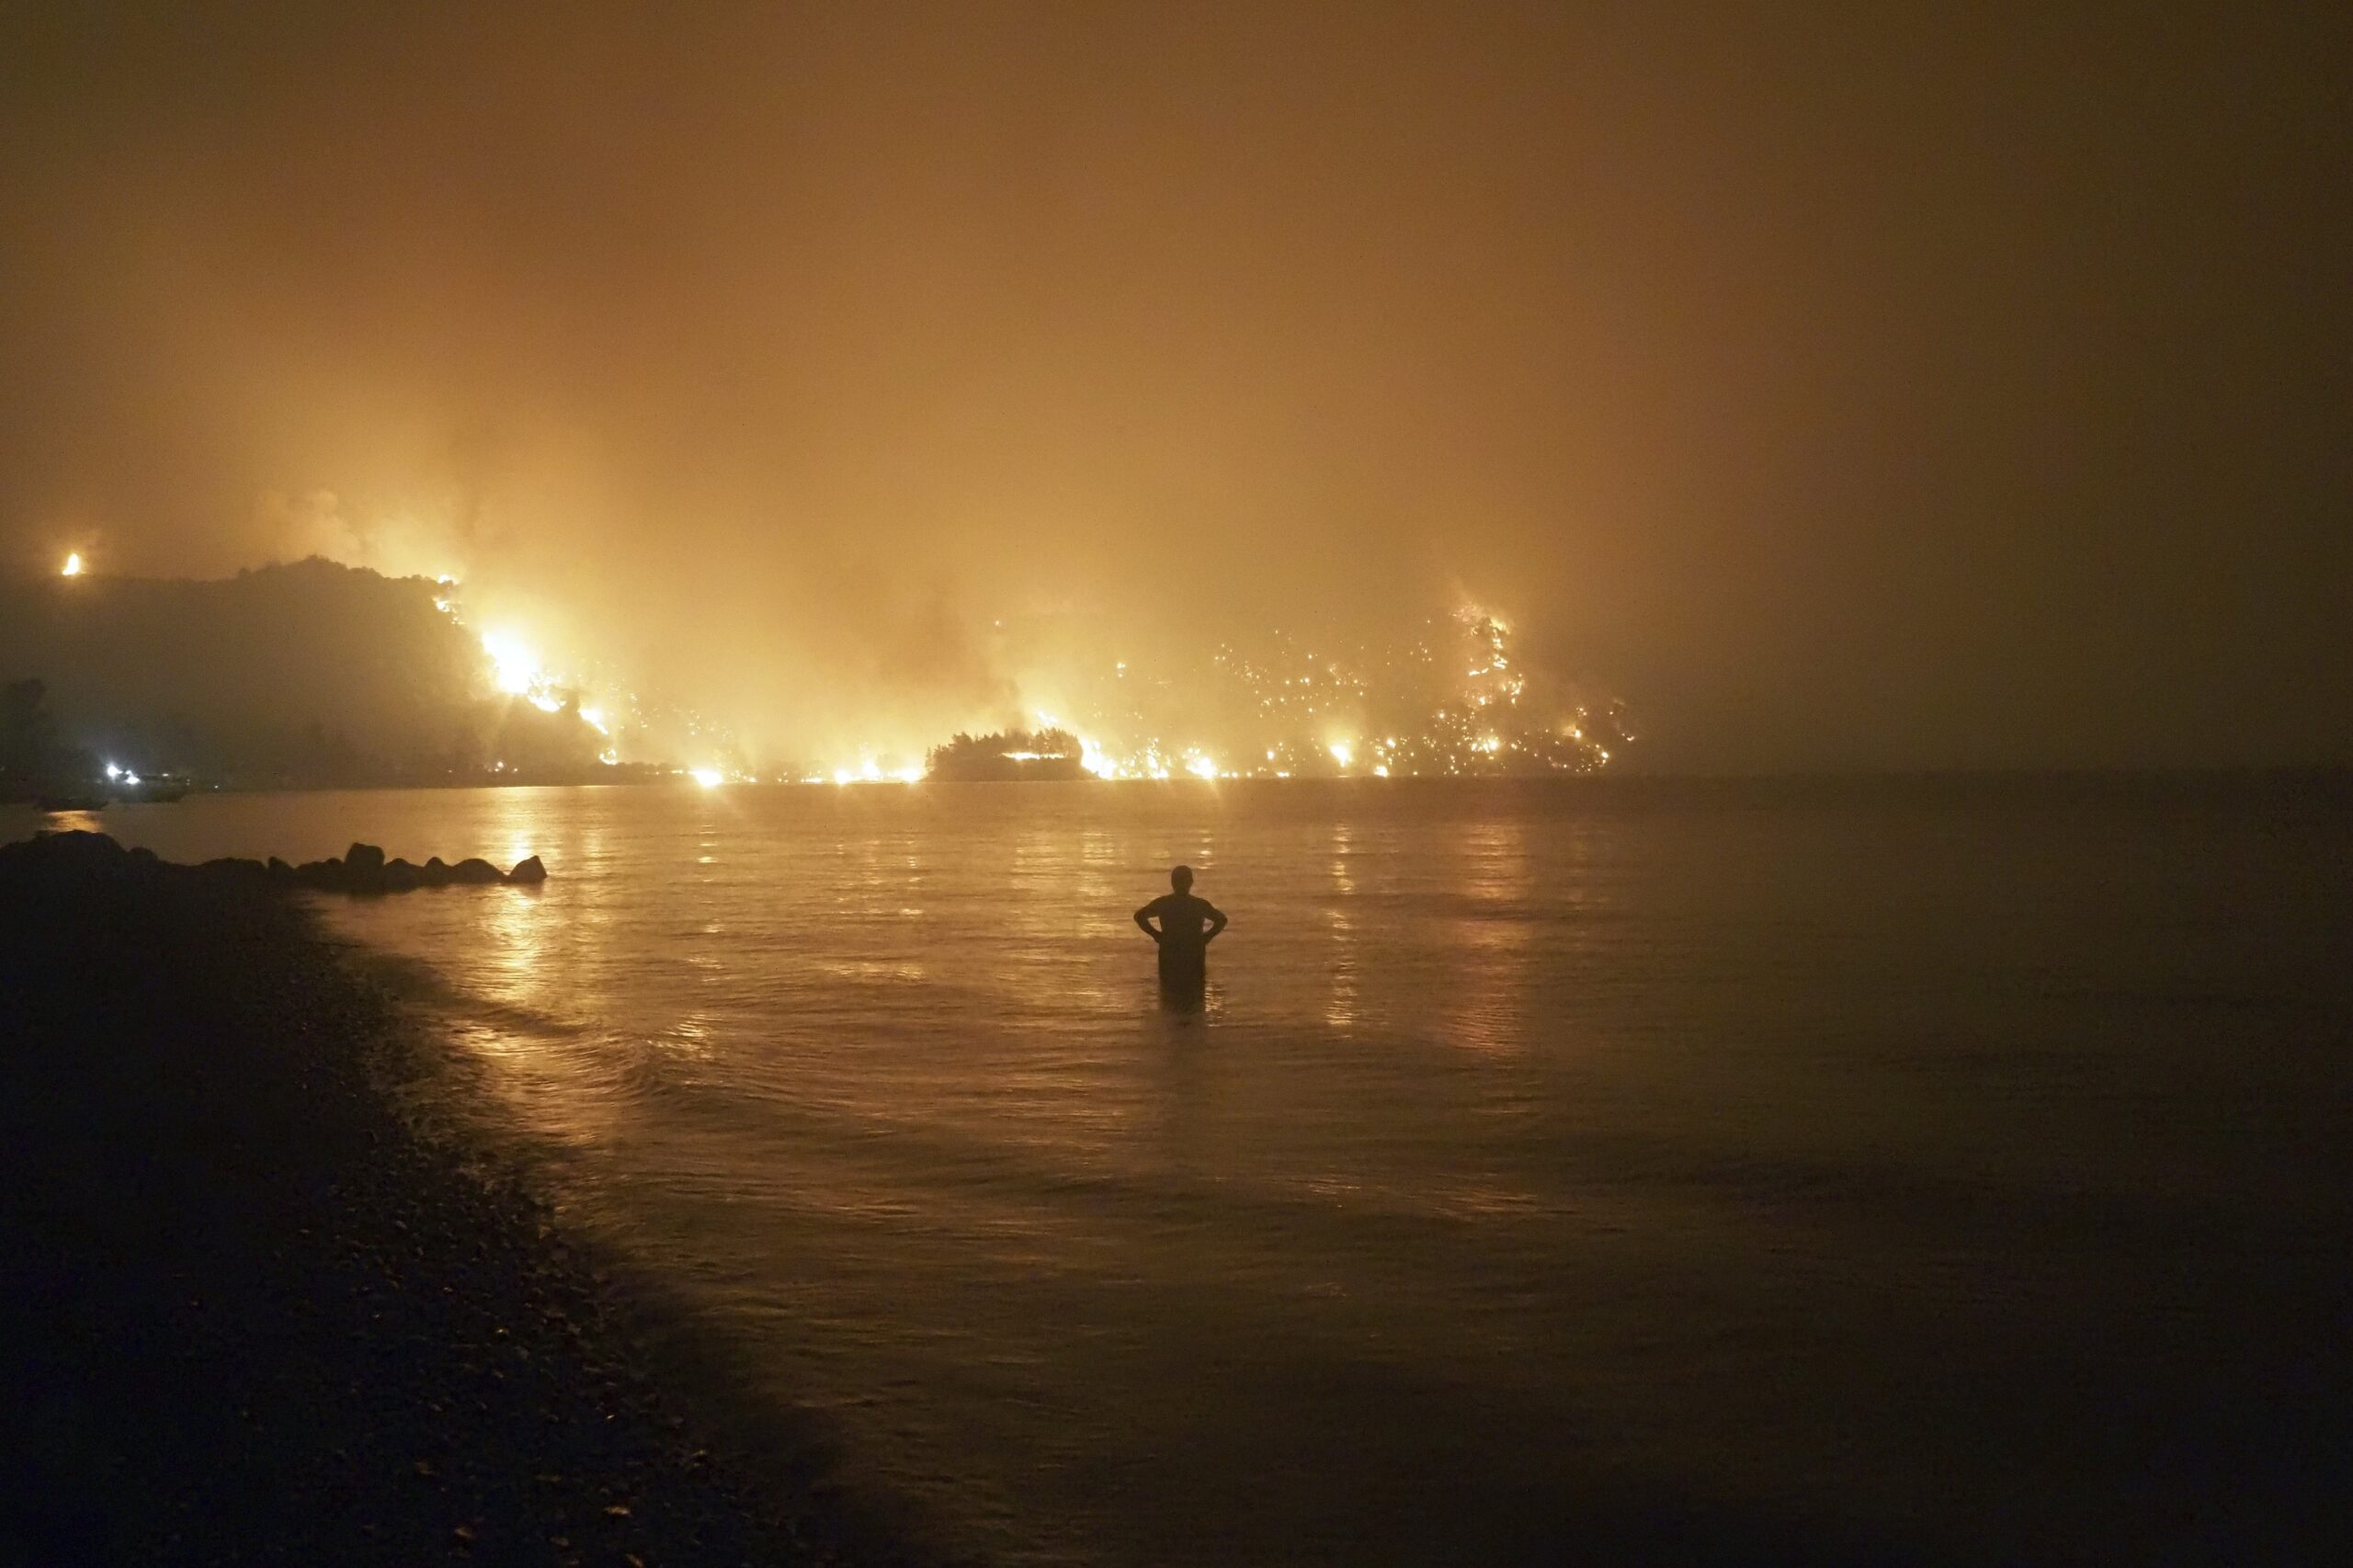 fires-rampage-through-forests-in-greece;-thousands-evacuated